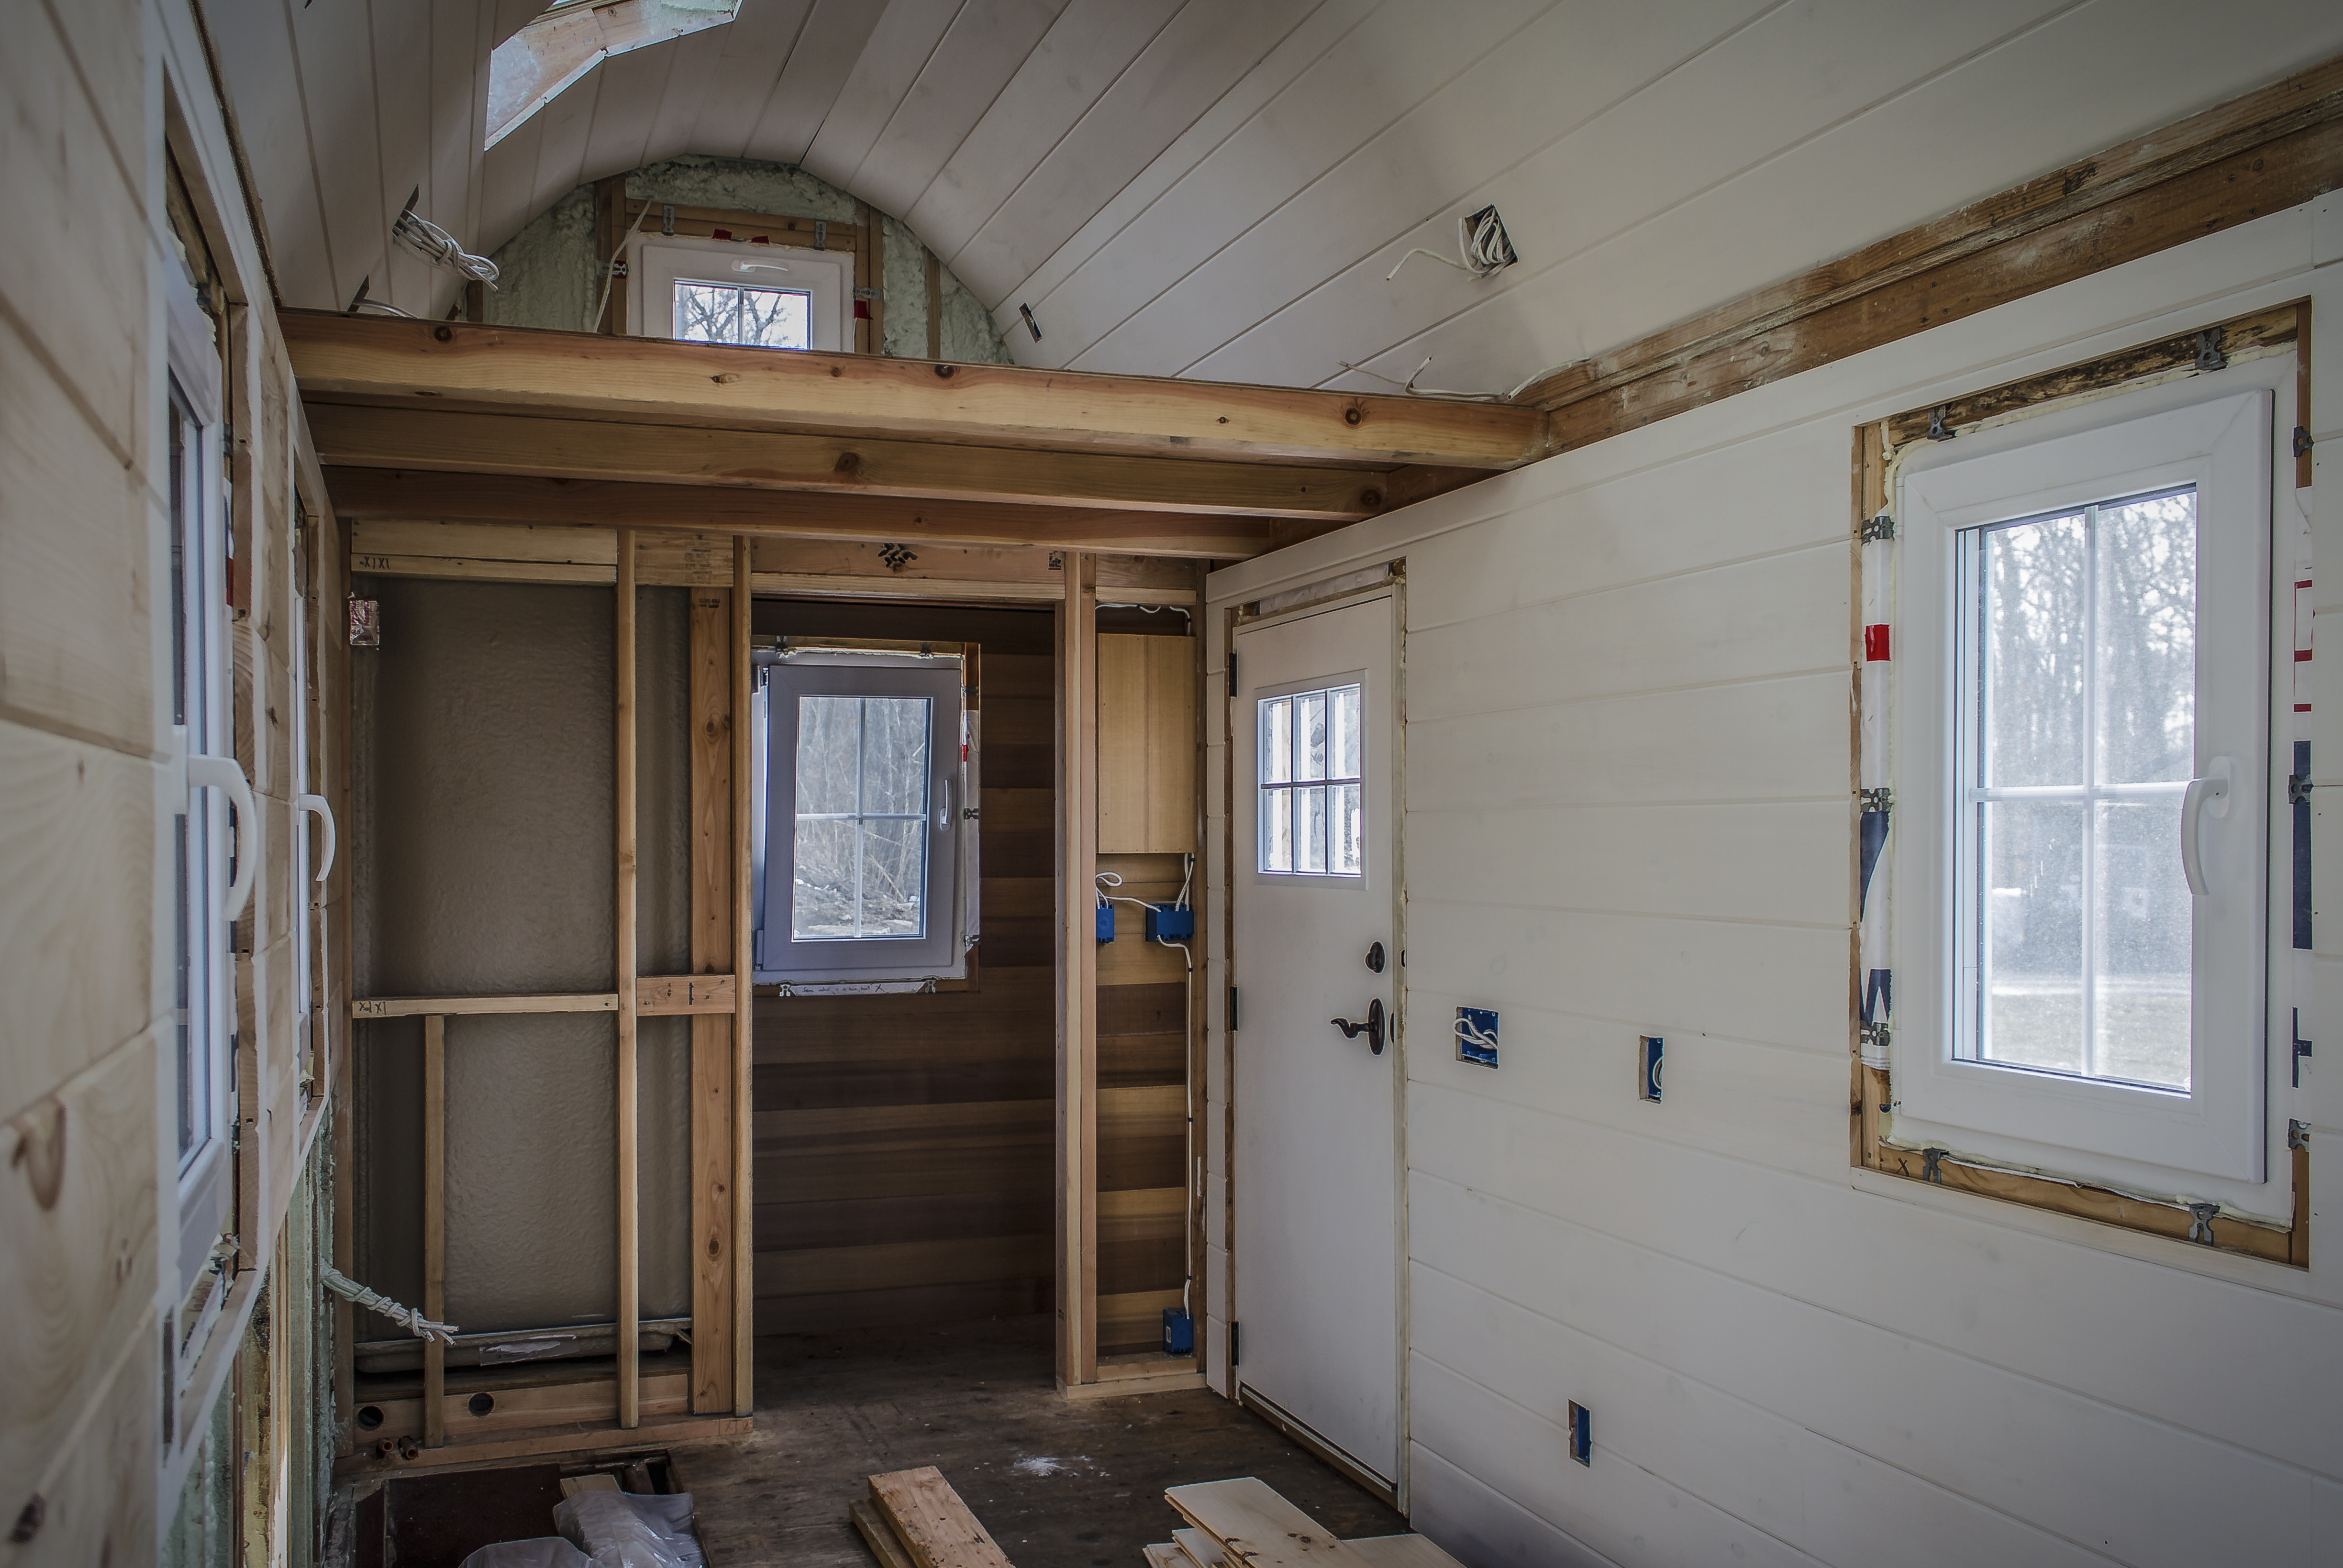 Interior Walls Our Tiny House Construction Since 2013